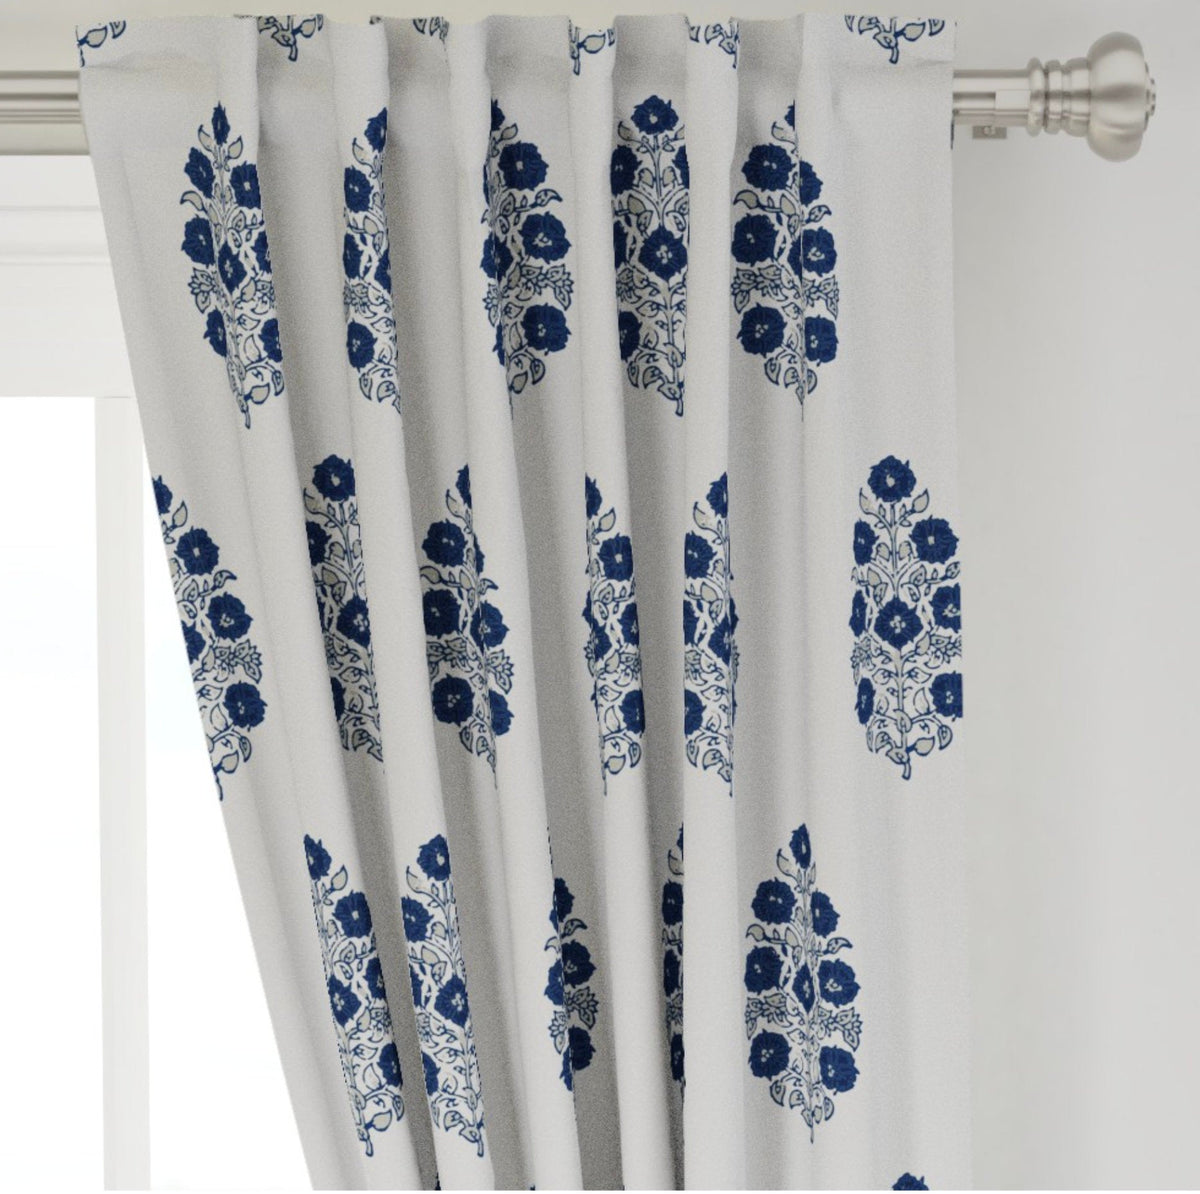 Mughal Flower Curtains Navy Beige White Curtains Indian